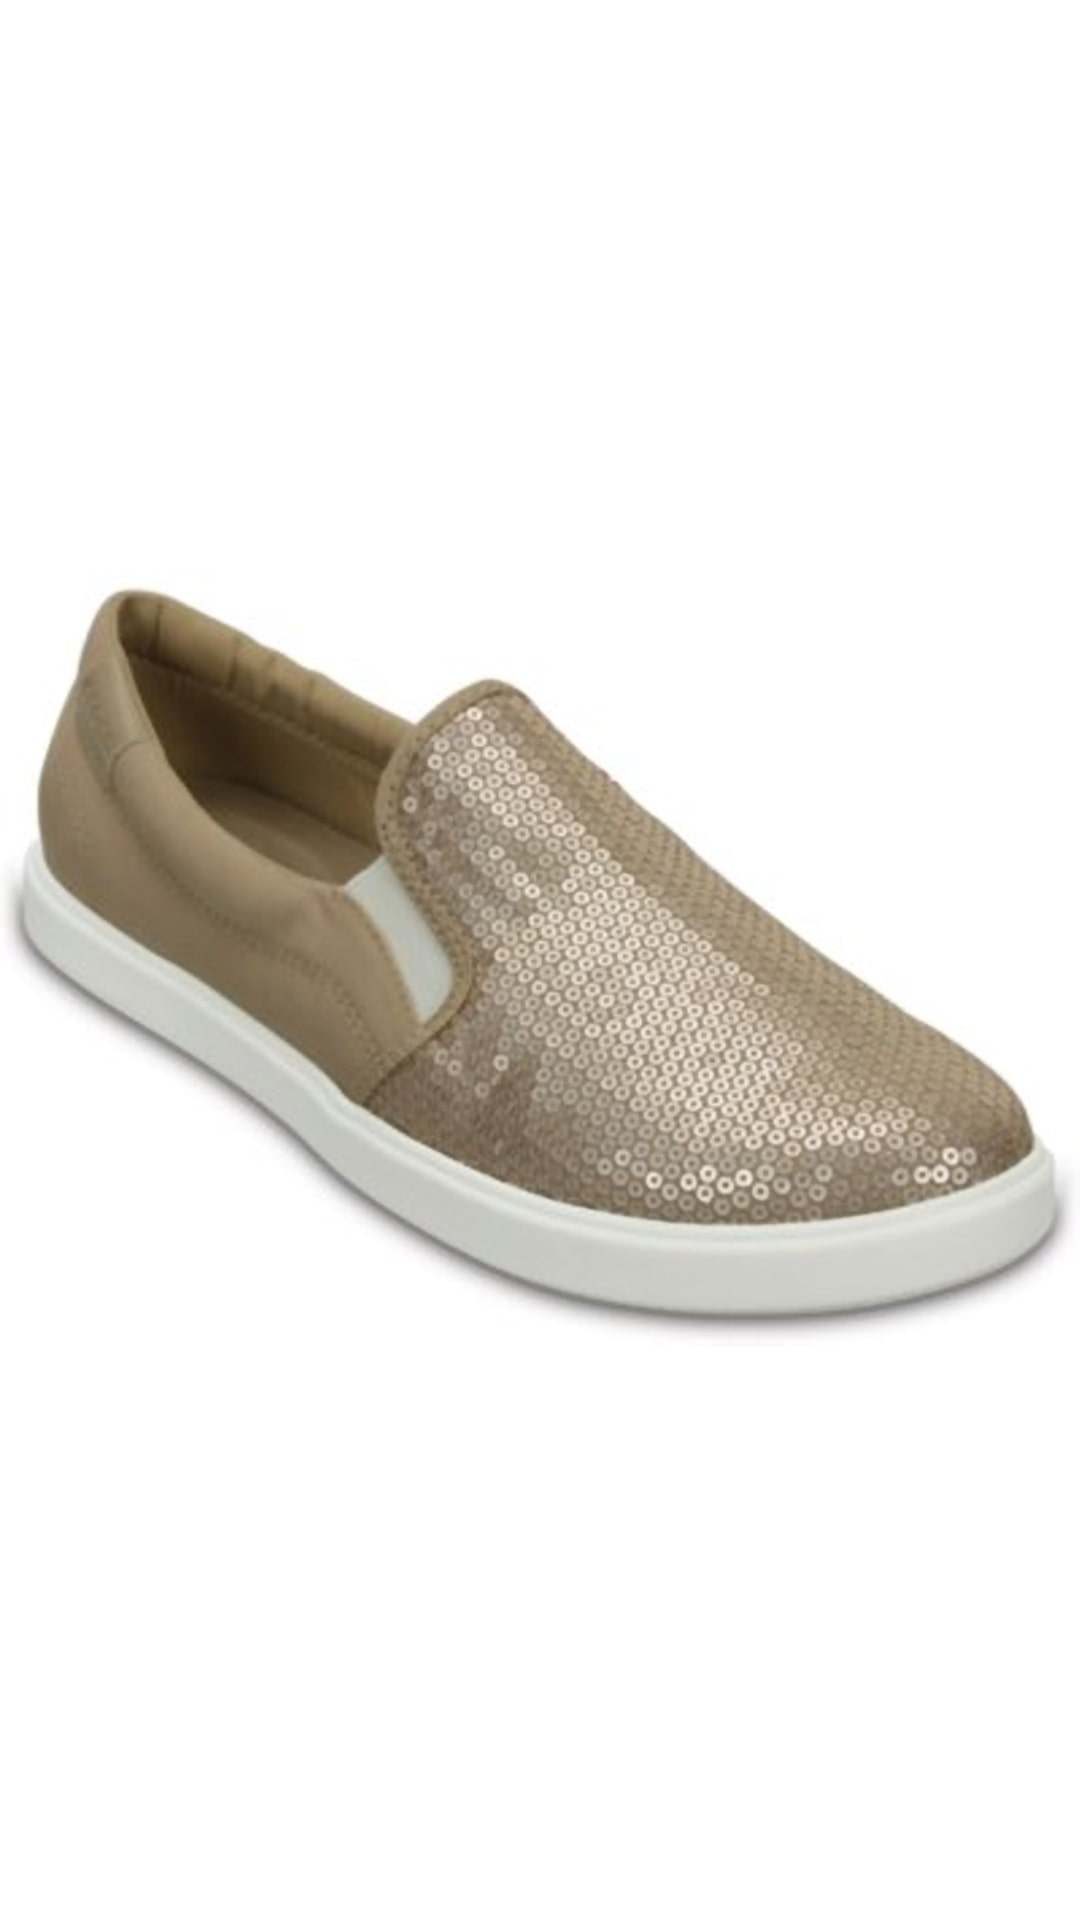 6de129876 Buy Crocs Women White Casual Shoes Online at Low Prices in India -  Paytmmall.com